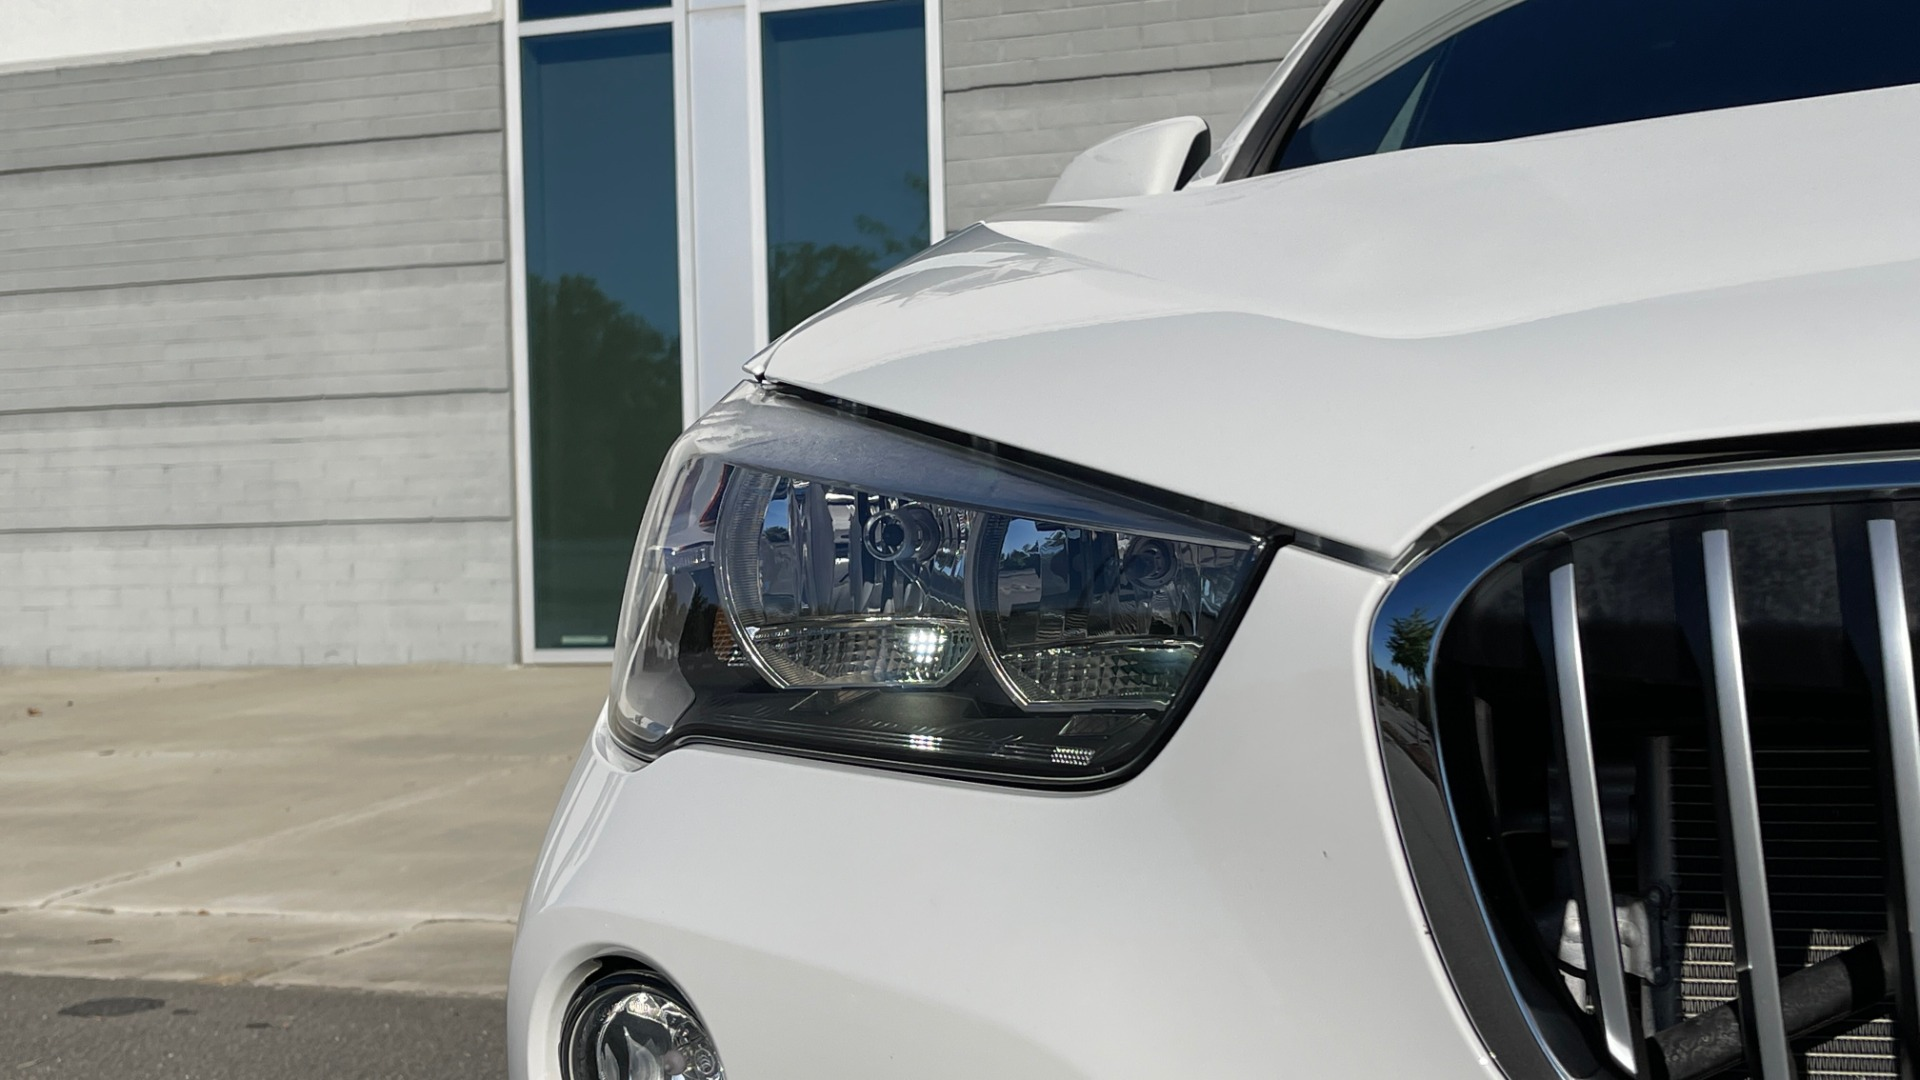 Used 2018 BMW X1 XDRIVE28I / CONV PKG / PANO-ROOF / PARK ASST / REARVIEW for sale $31,995 at Formula Imports in Charlotte NC 28227 12